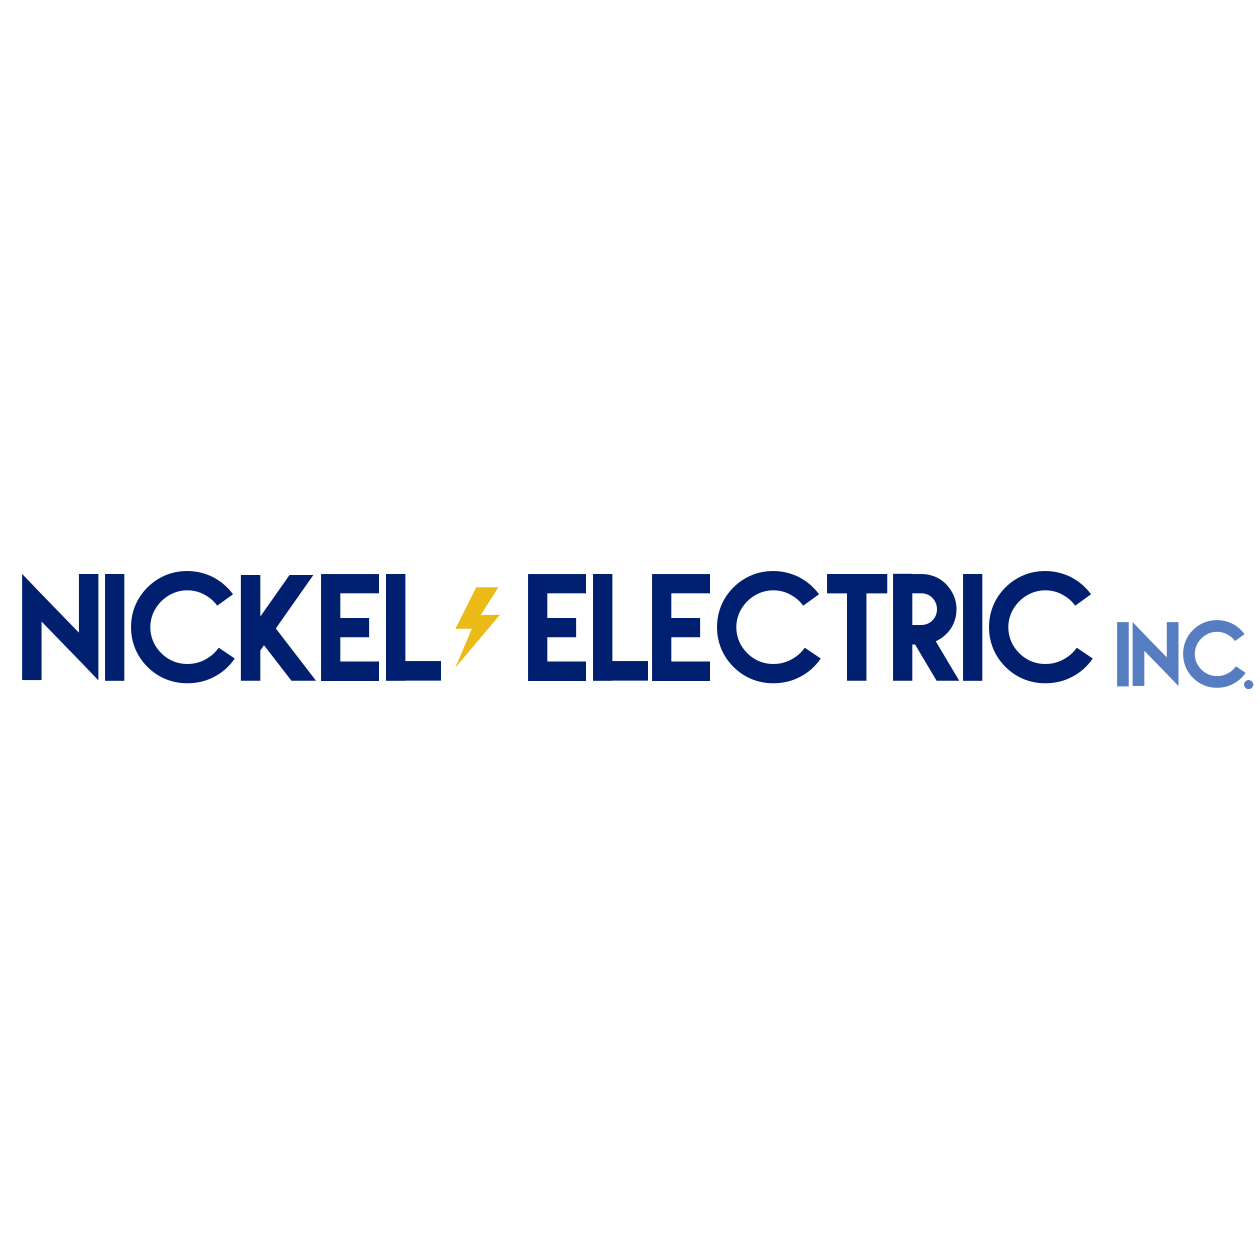 Nickel Electric Inc. image 0